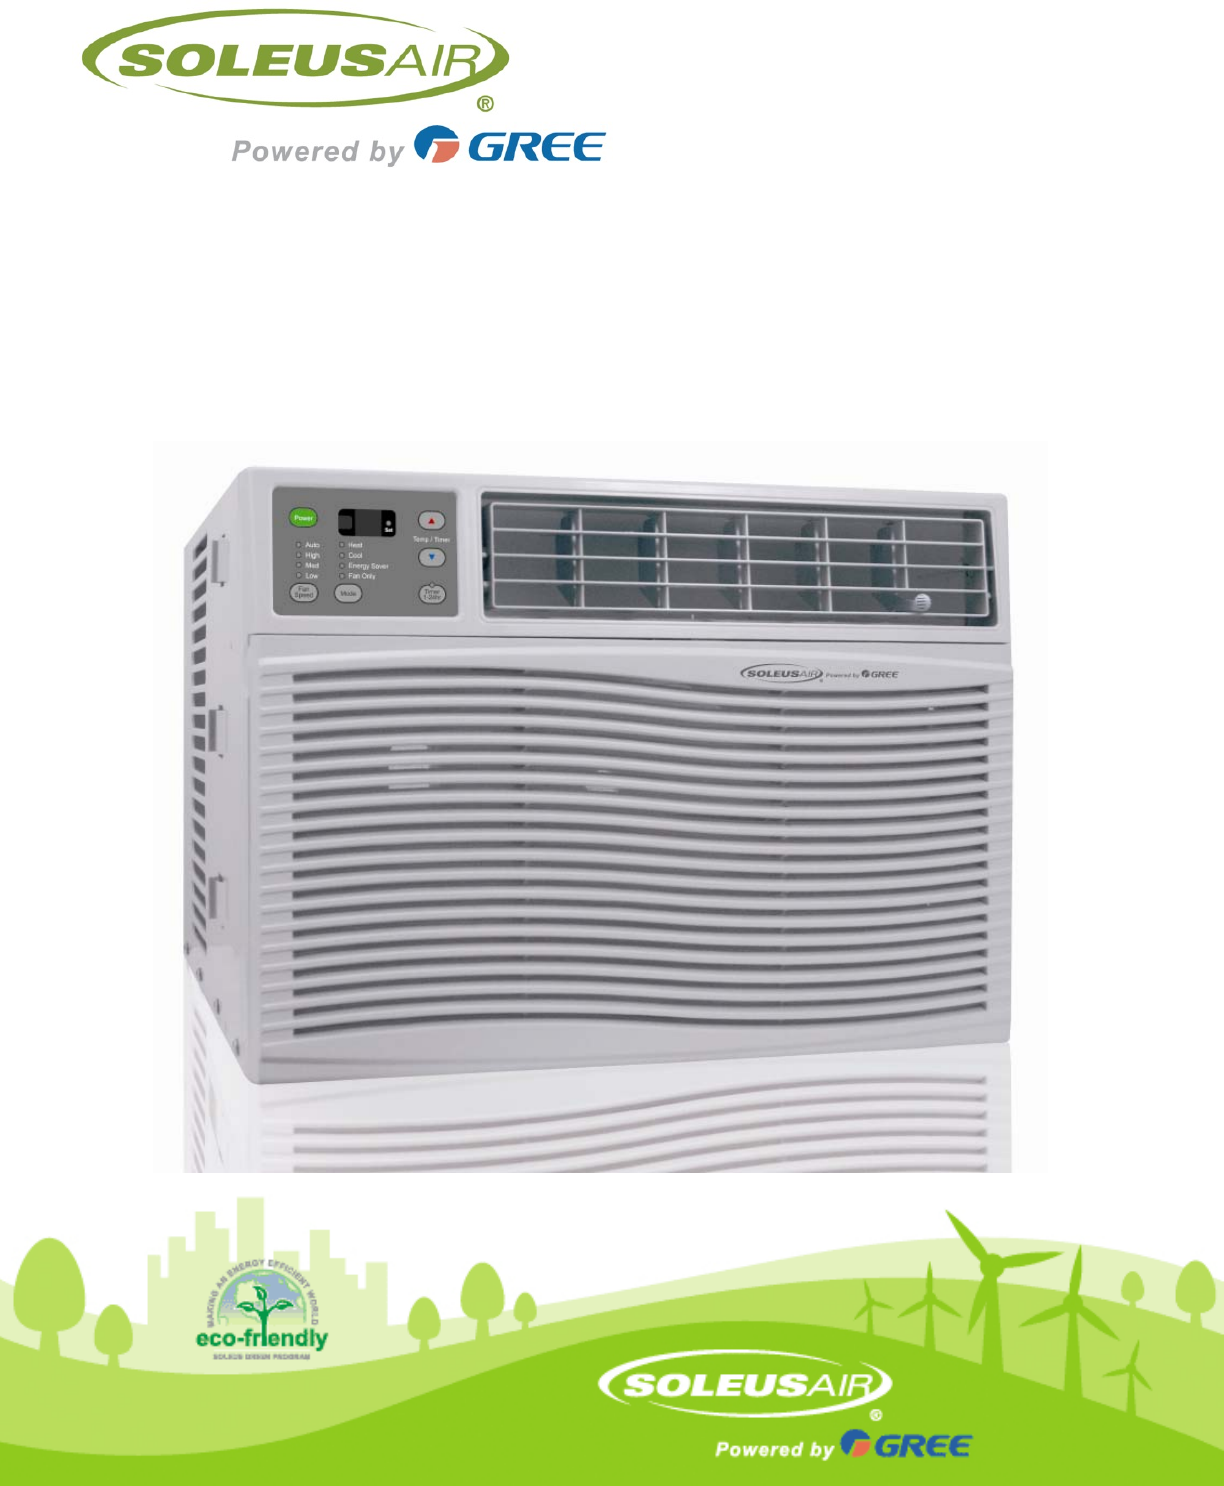 soleus air window air conditioner manual